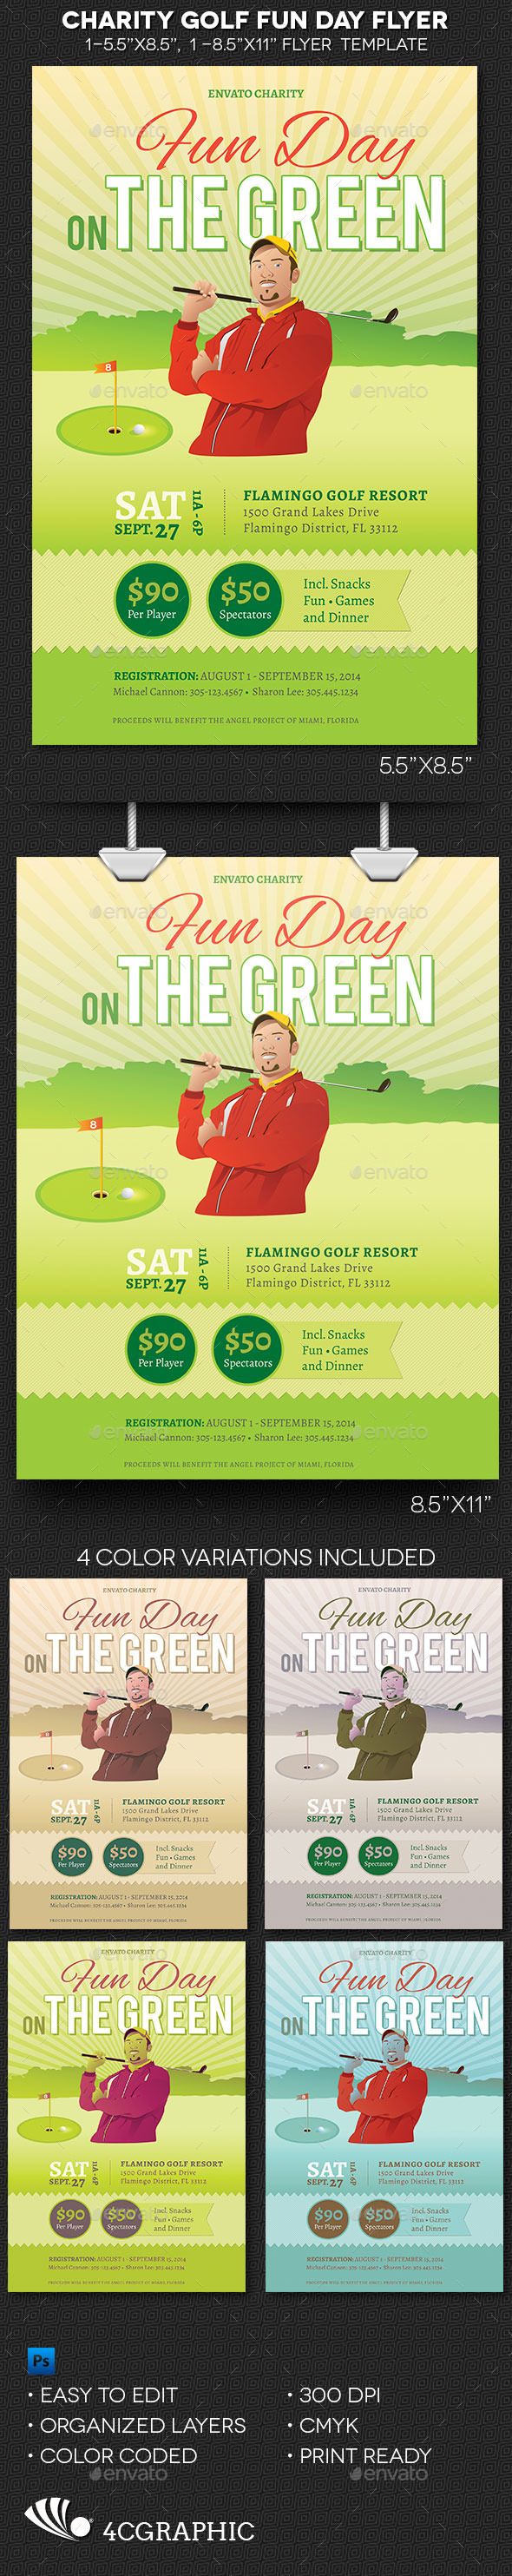 Charity golf fun day flyer template by 4cgraphic for Fun brochure templates